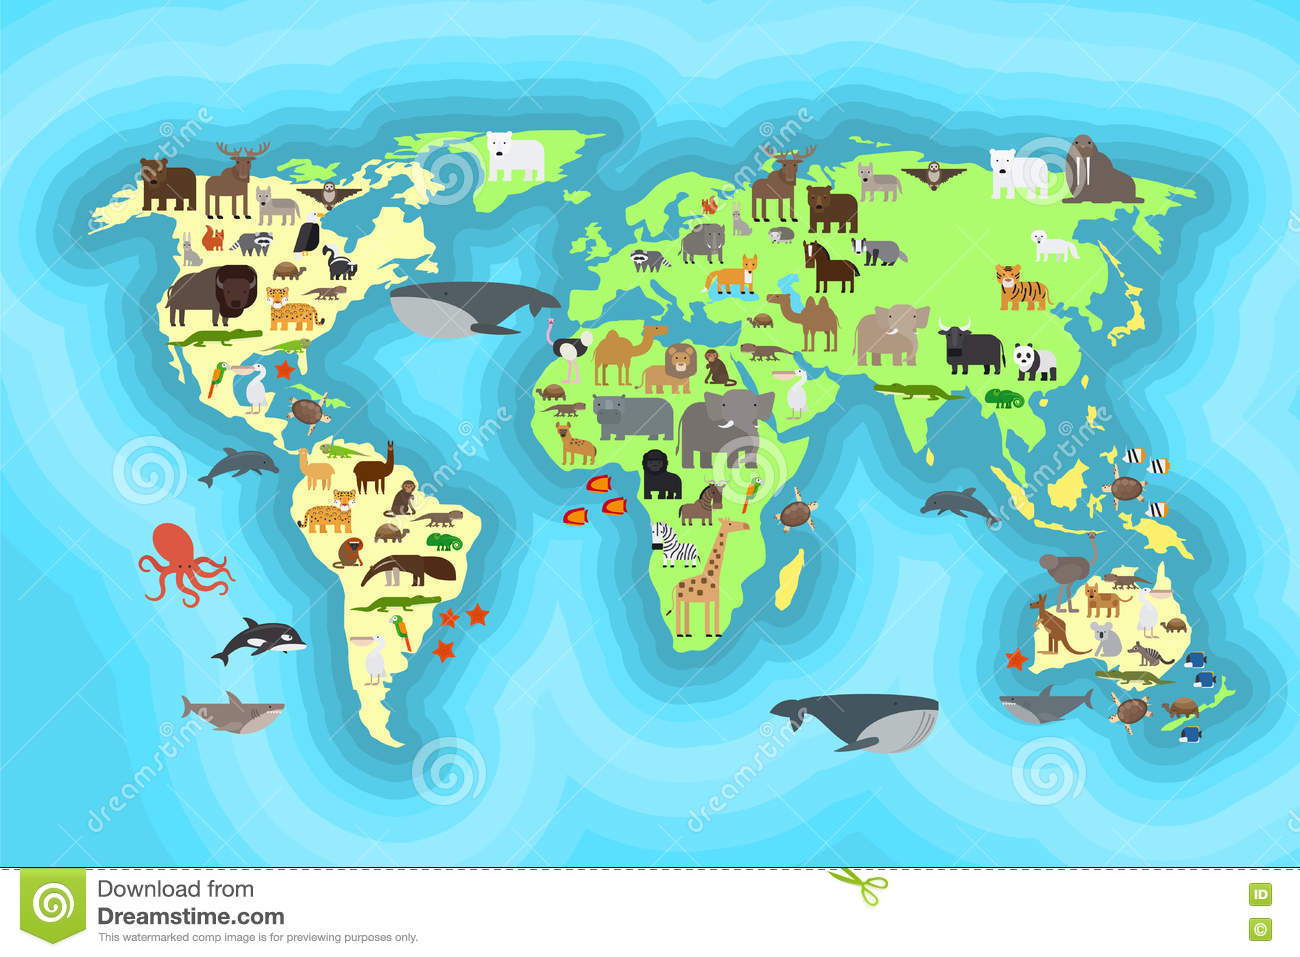 Animals world map wallpaper design stock image image of brown animals world map wallpaper design royalty free stock photo gumiabroncs Gallery